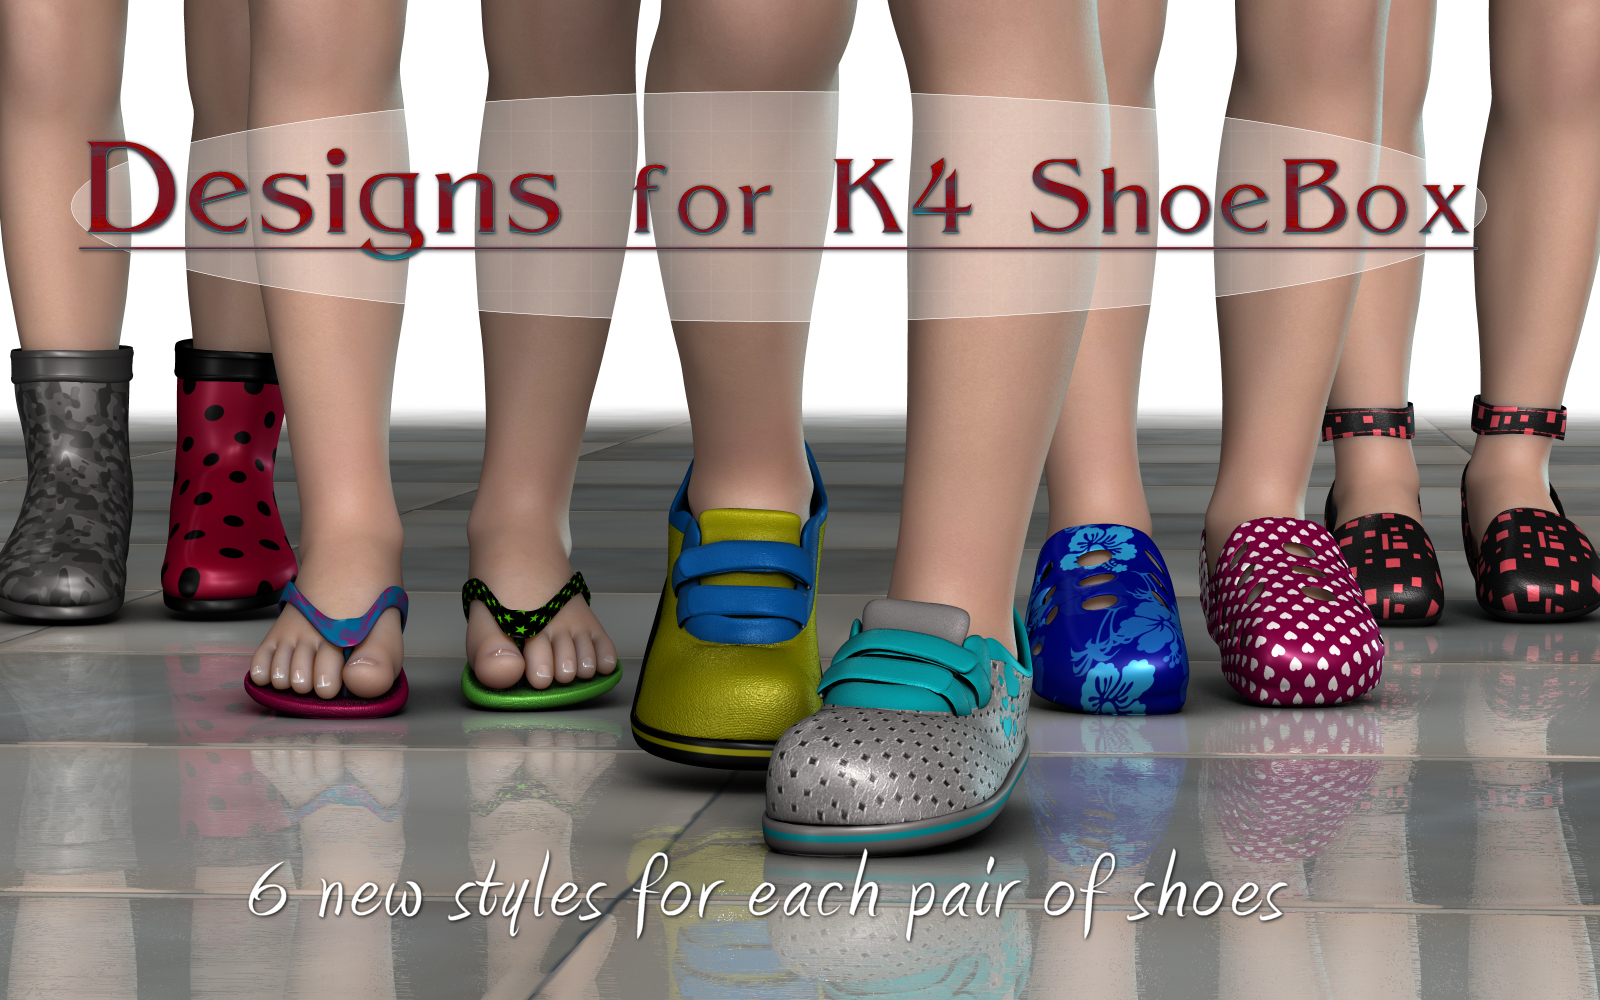 Design for K4 ShoeBox_Poser